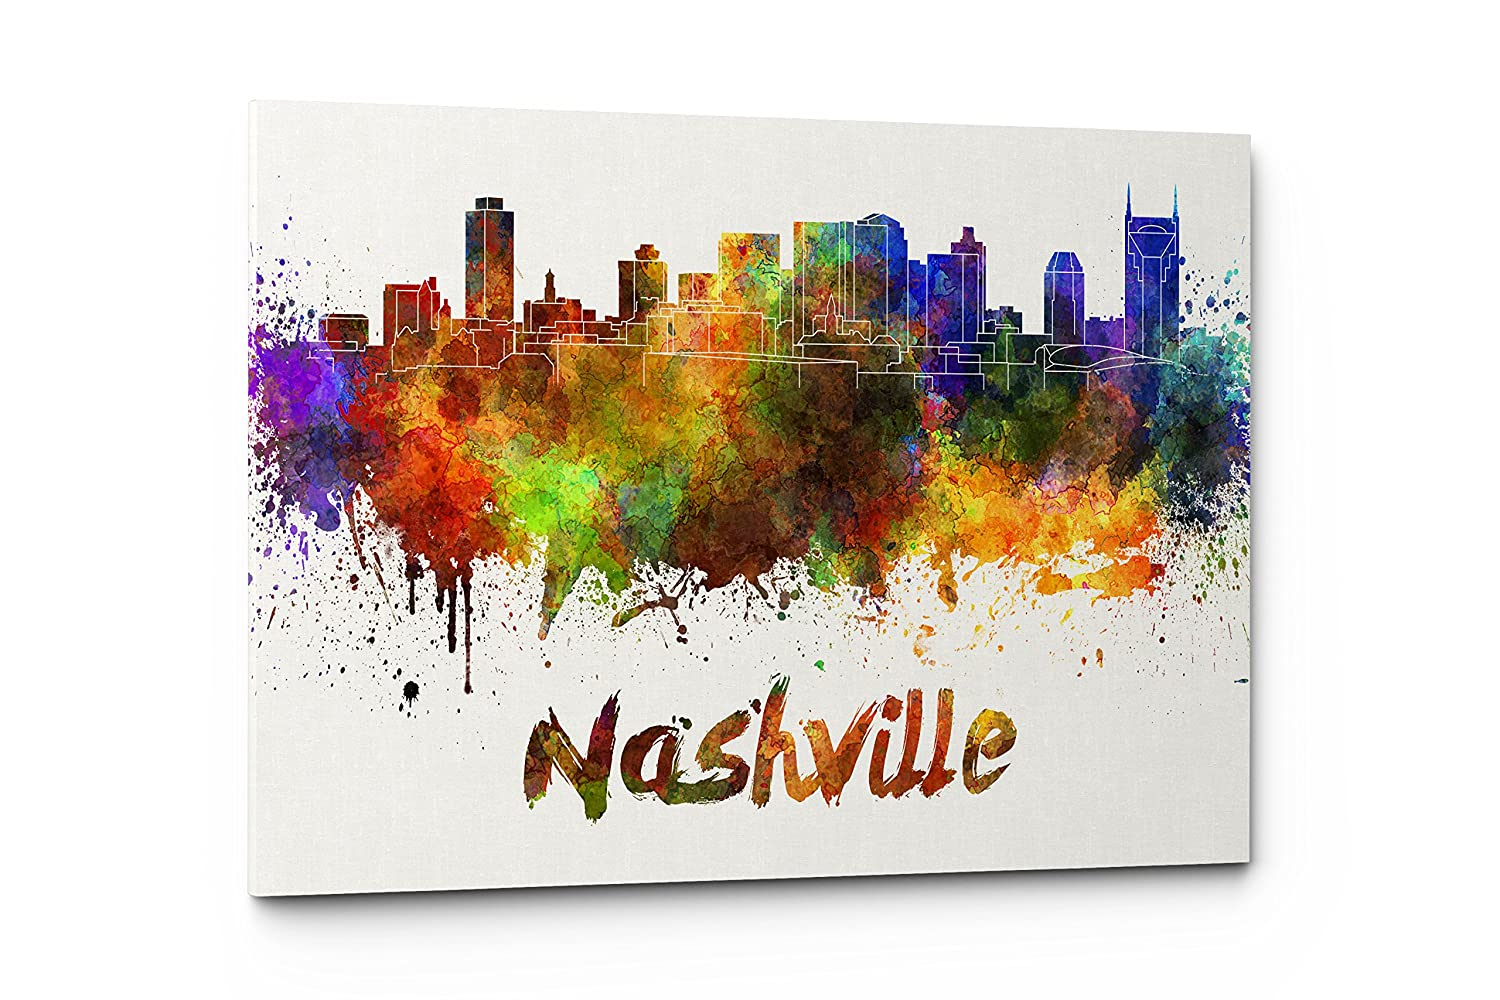 Qutenest Watercolor Nashville City Skyline Canvas Wall Art Prints, Modern Abstract Cityscape Wall Art Print, Gallery Wrapped Giclee Canvas Art, Home Decor, Office Decor - Ready to Hang (Nashville)